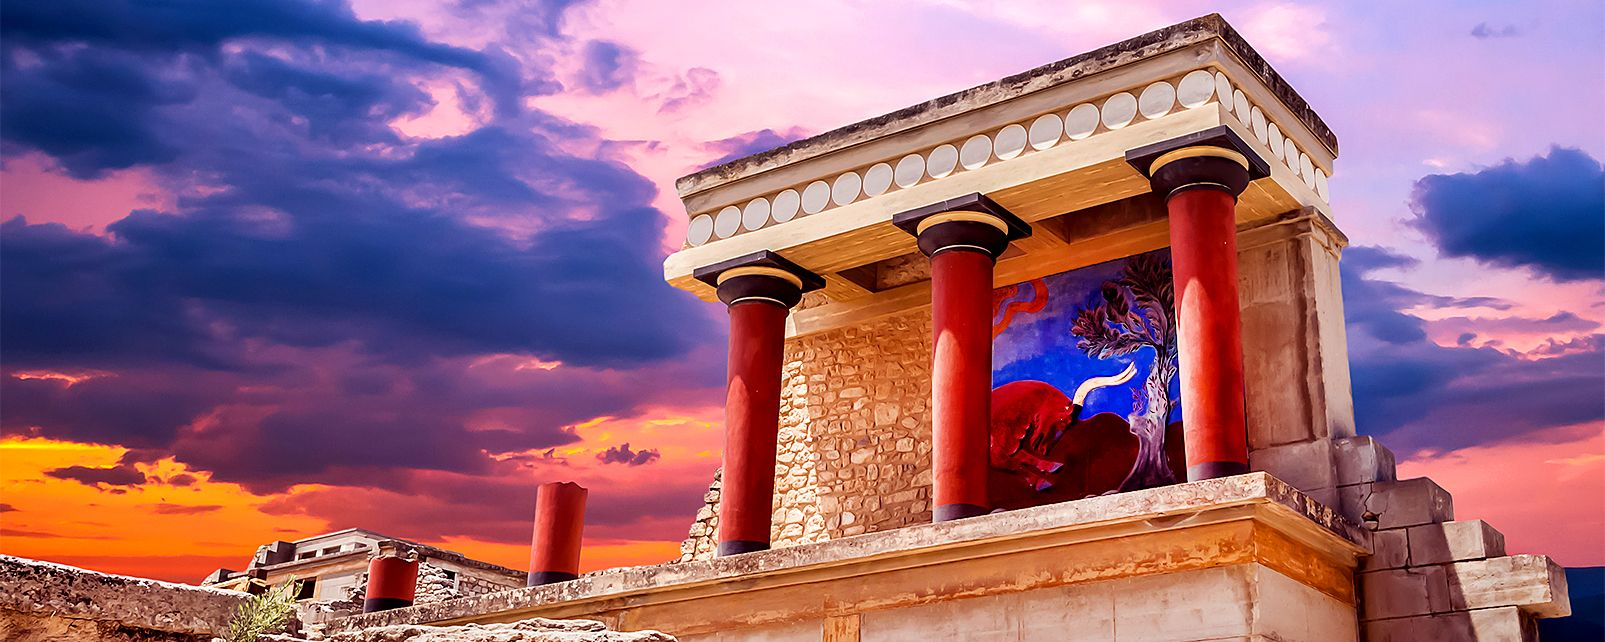 The Palace of Knossos, Elefterna, Monuments, Crete